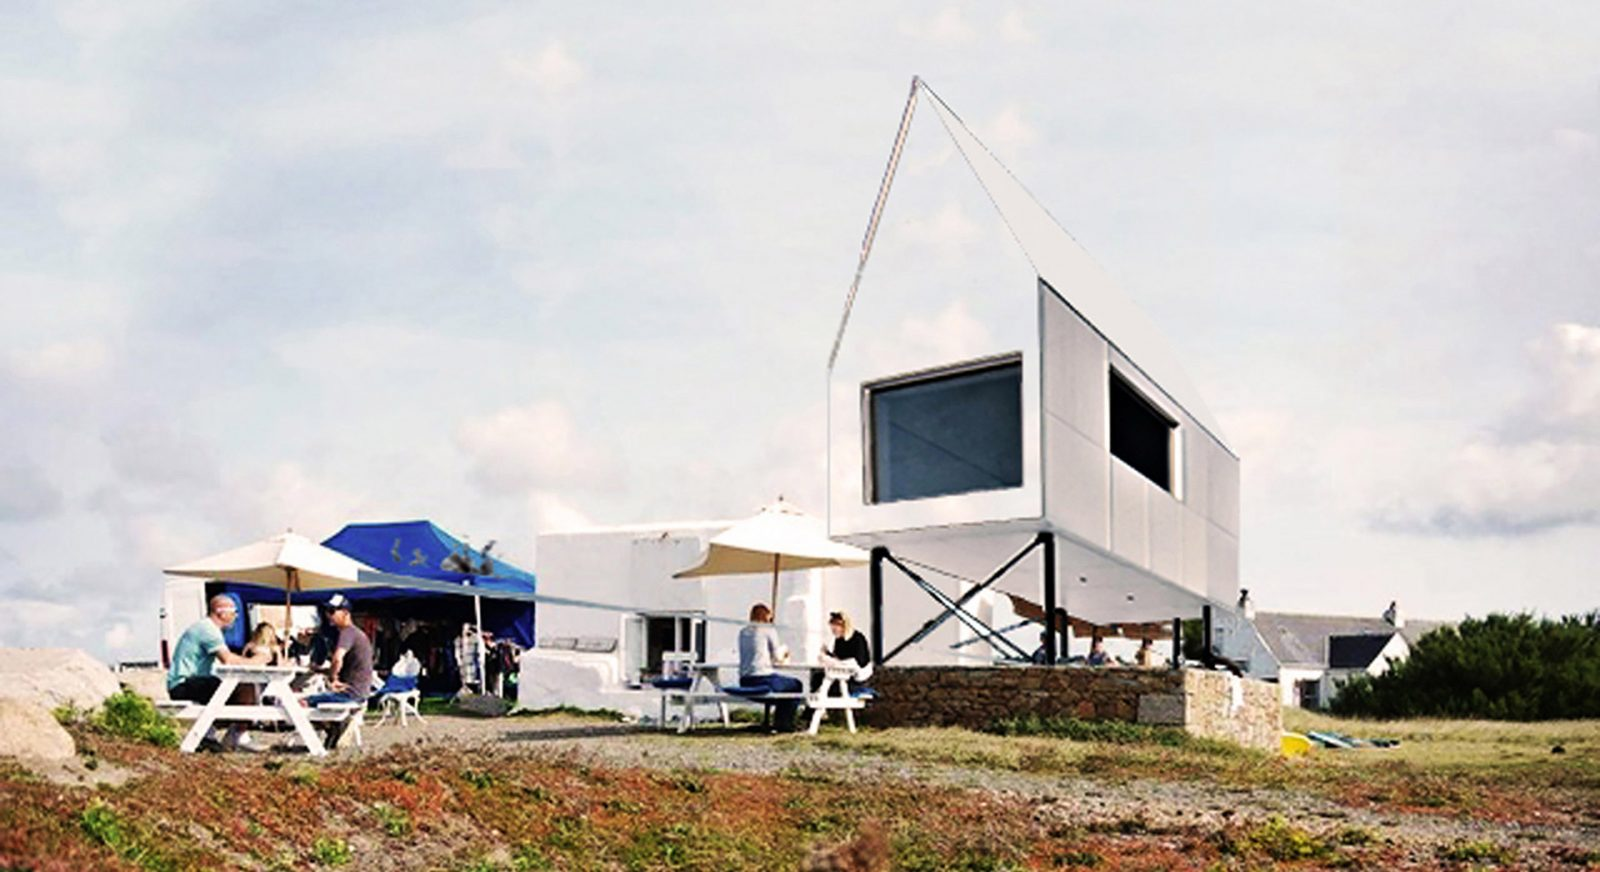 FT little white surf hut le port st ouen jersey architects jersey11